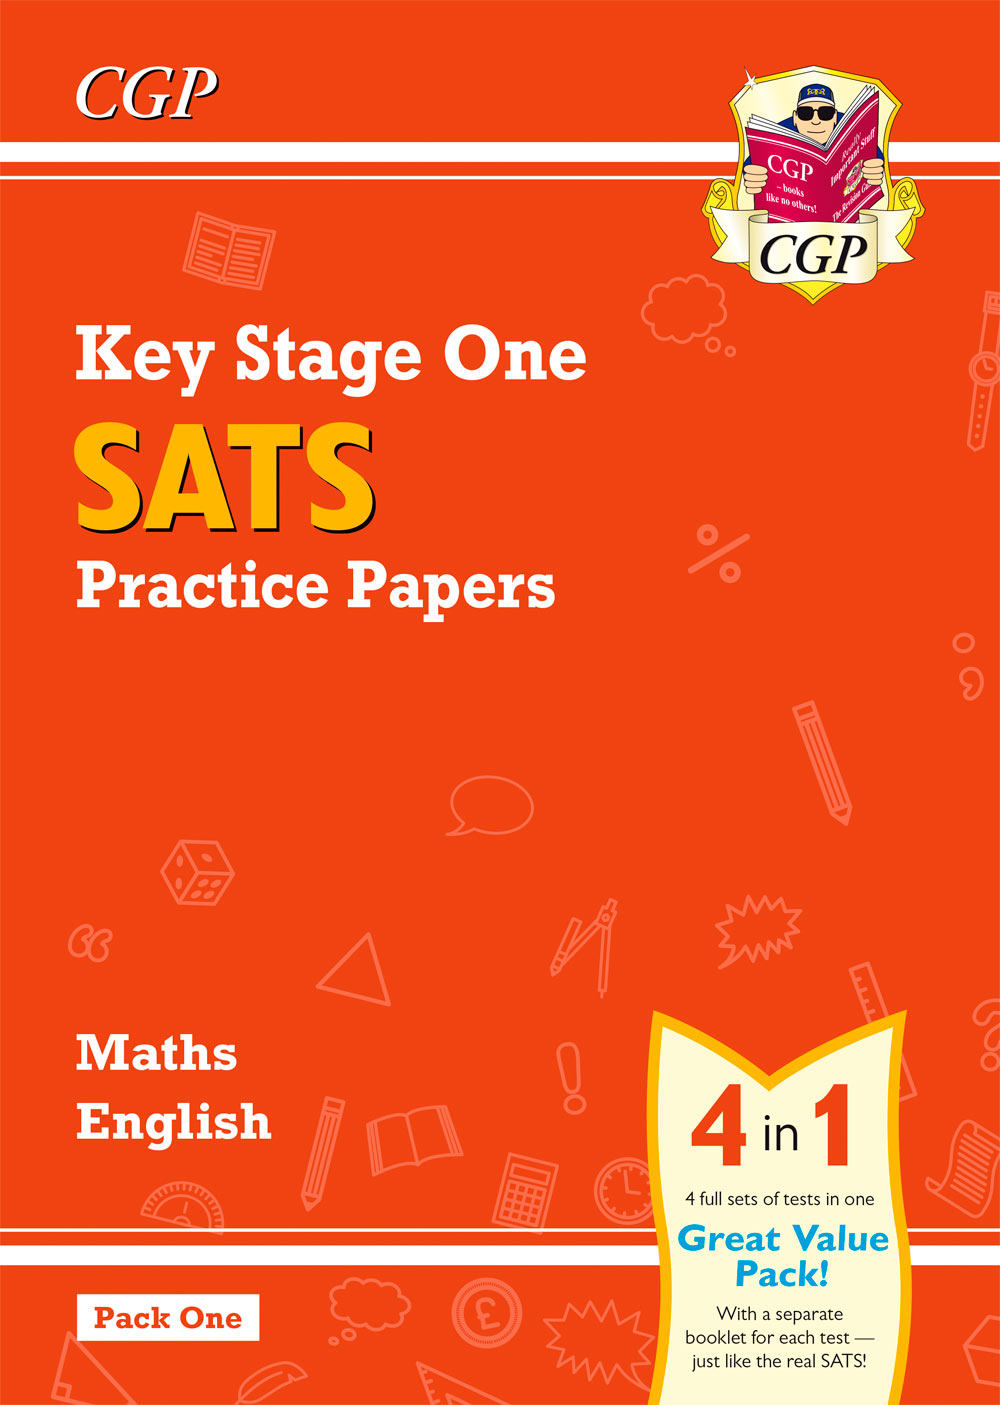 MEB16 - New KS1 Maths and English SATS Practice Papers Pack (for the 2019 tests) - Pack 1